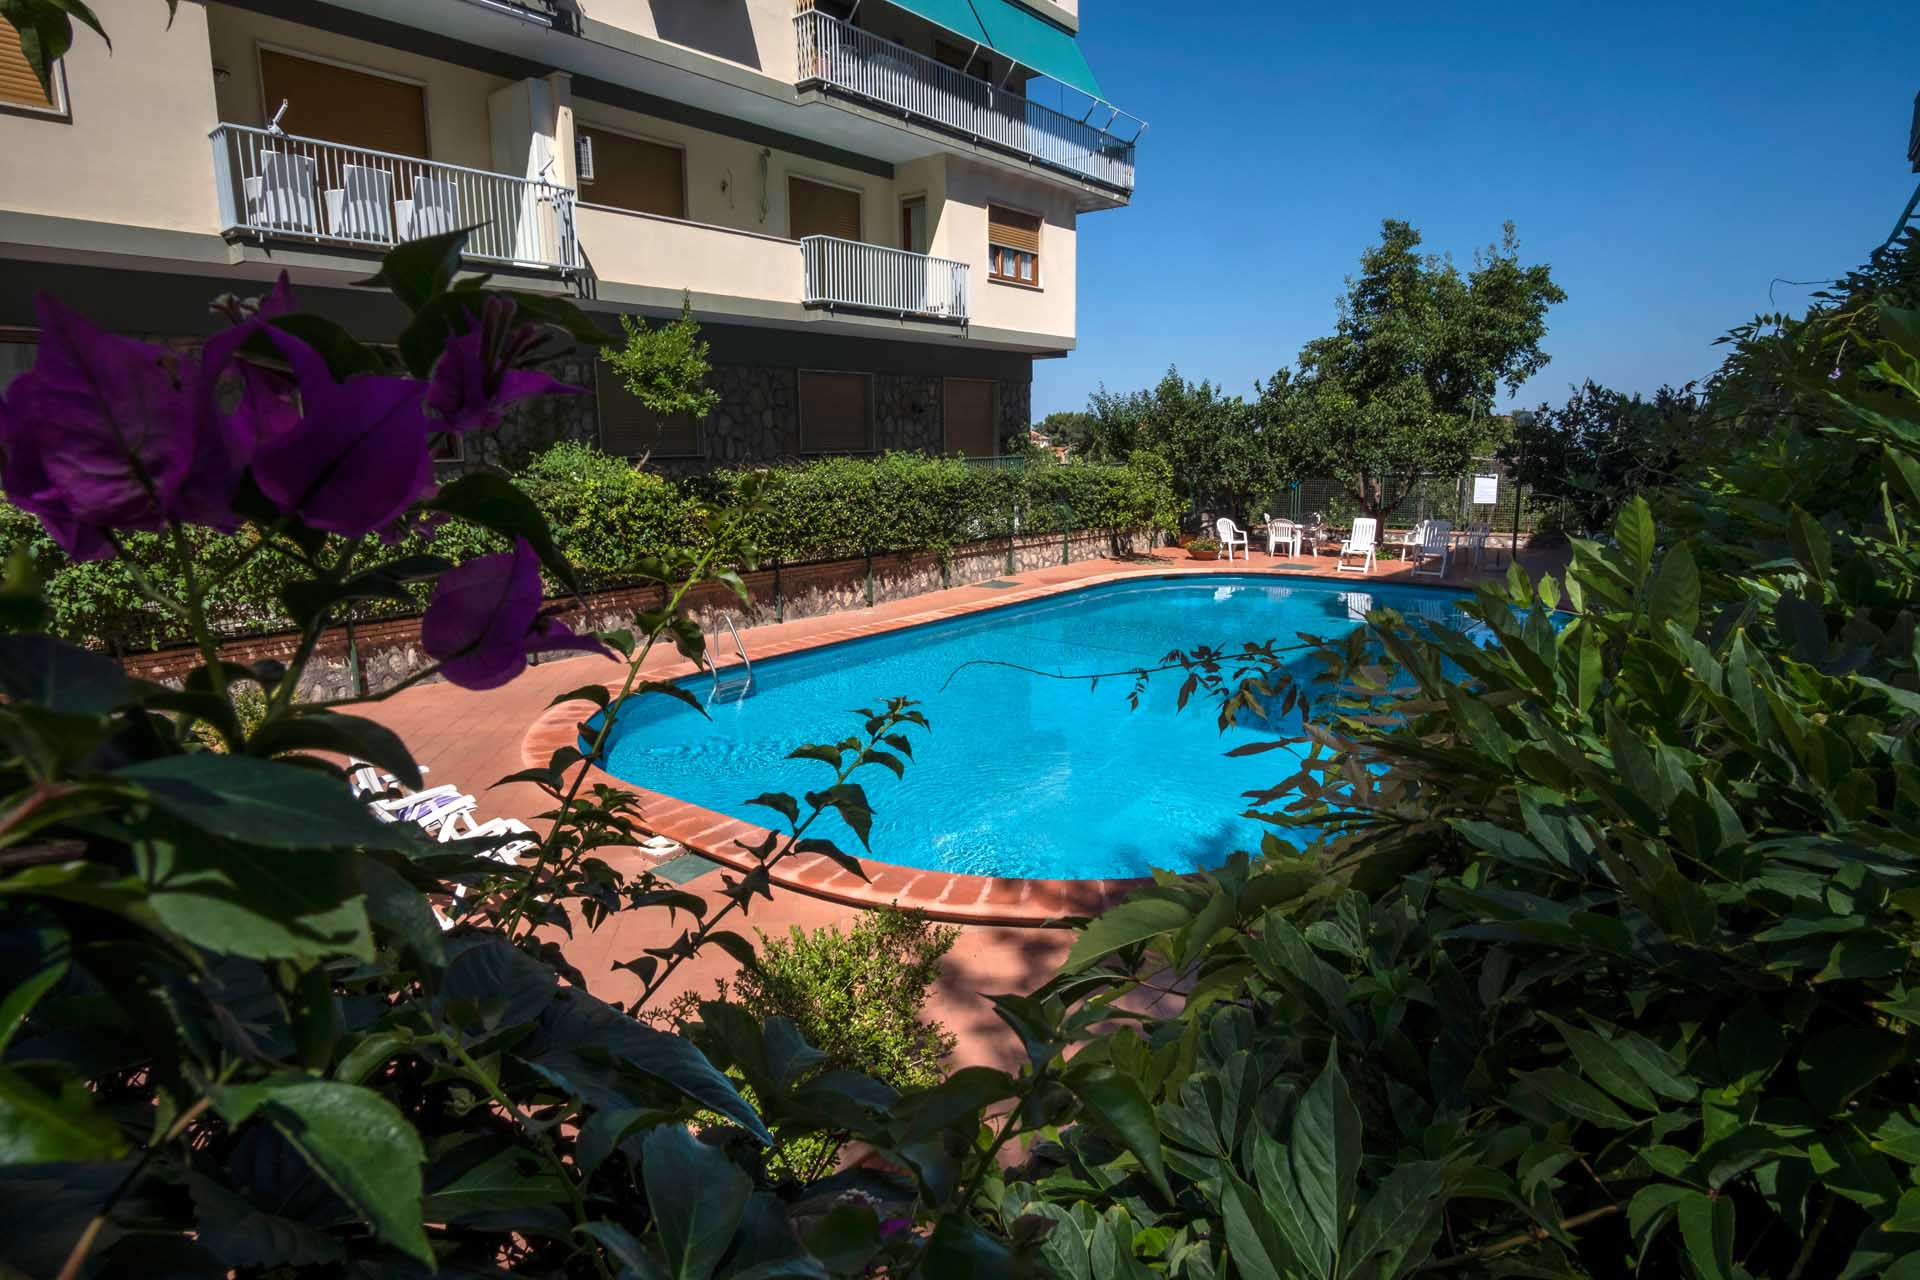 Maison Vittoria swimming pool (8)